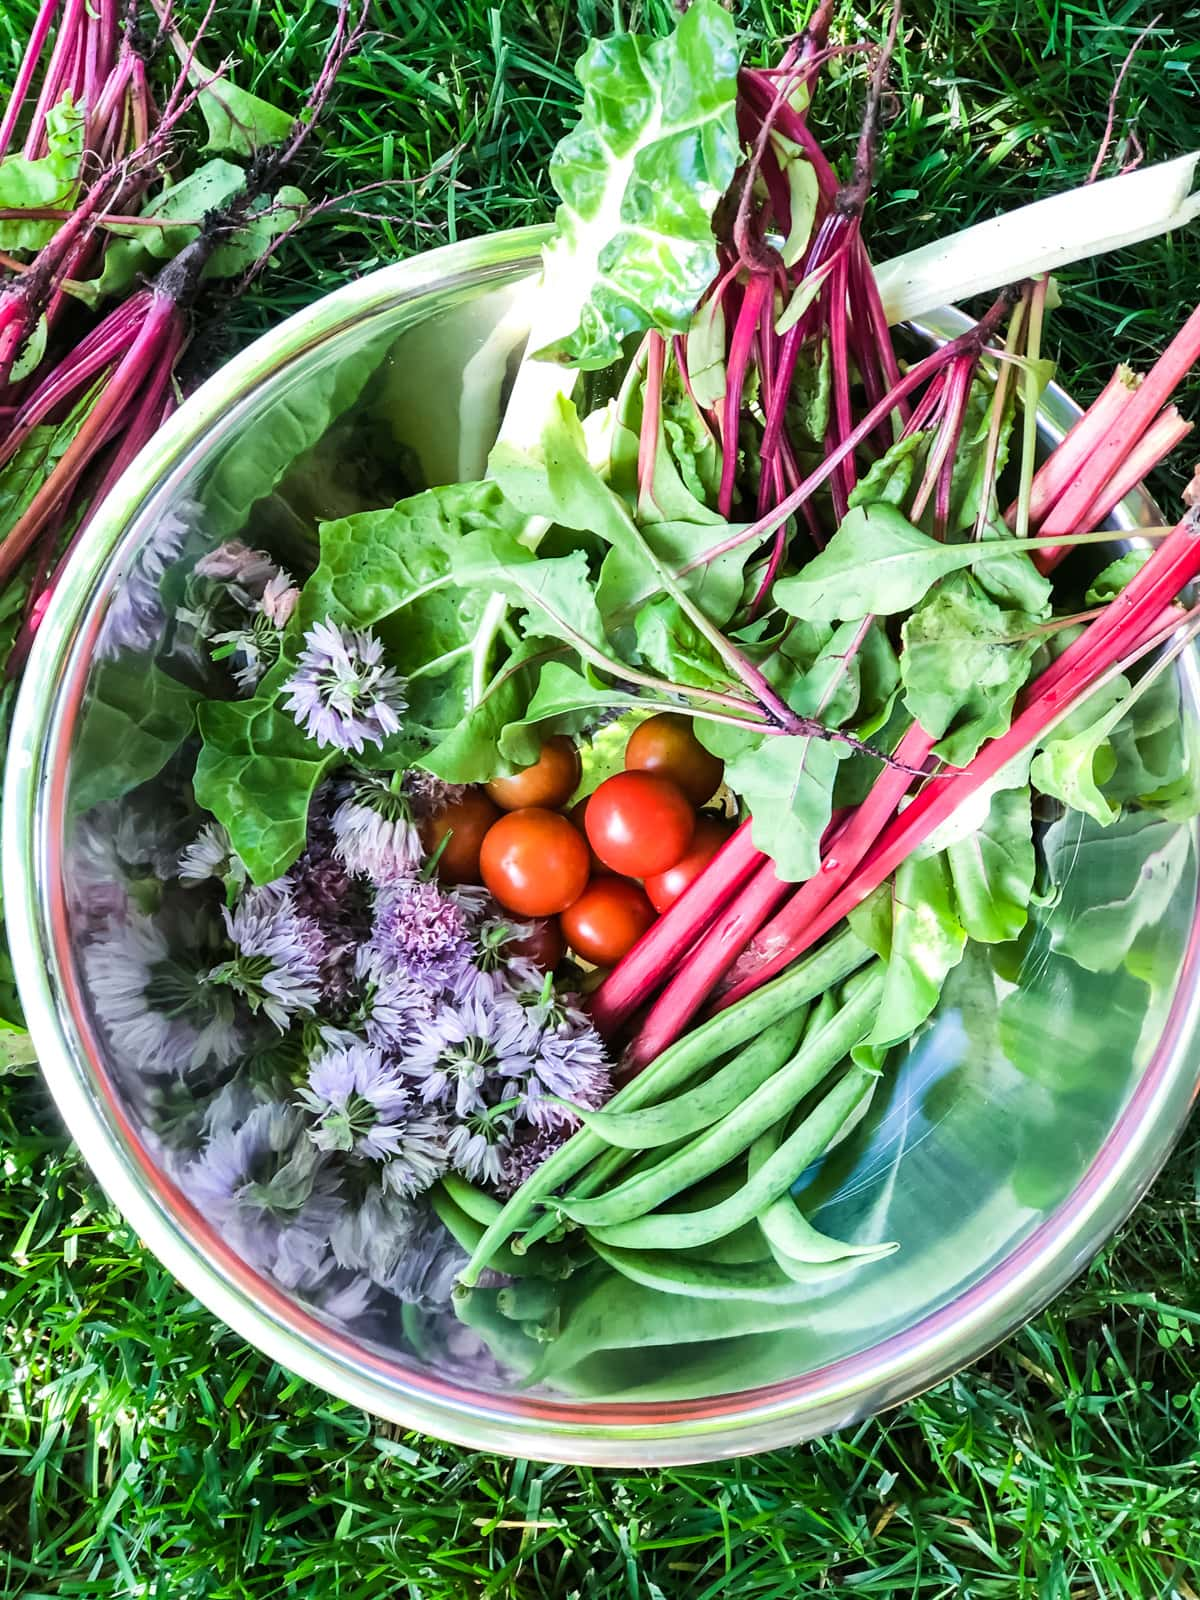 a top down view of a bowl of fresh beet greens, beans, tomatoes, chive blossoms and swiss chard